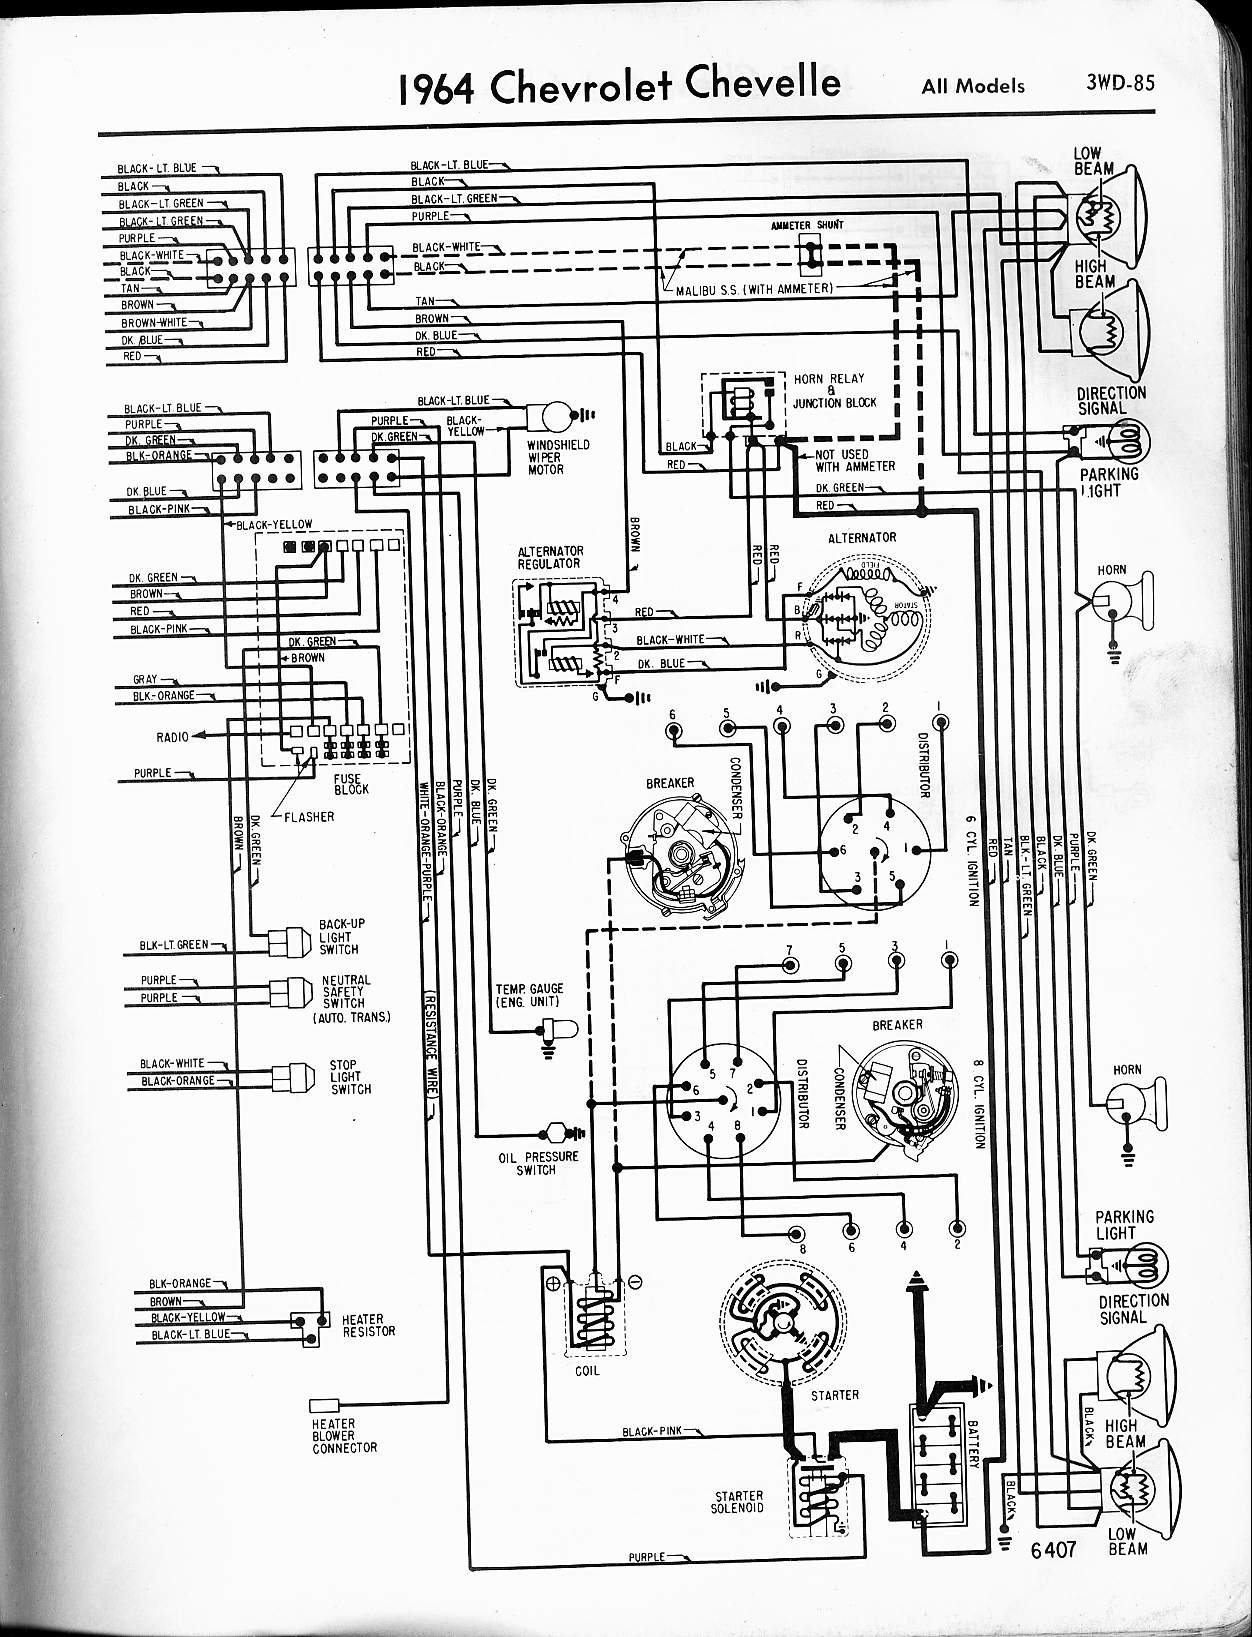 MWireChev64_3WD 085 chevy diagrams 1965 malibu wiring diagram at mifinder.co